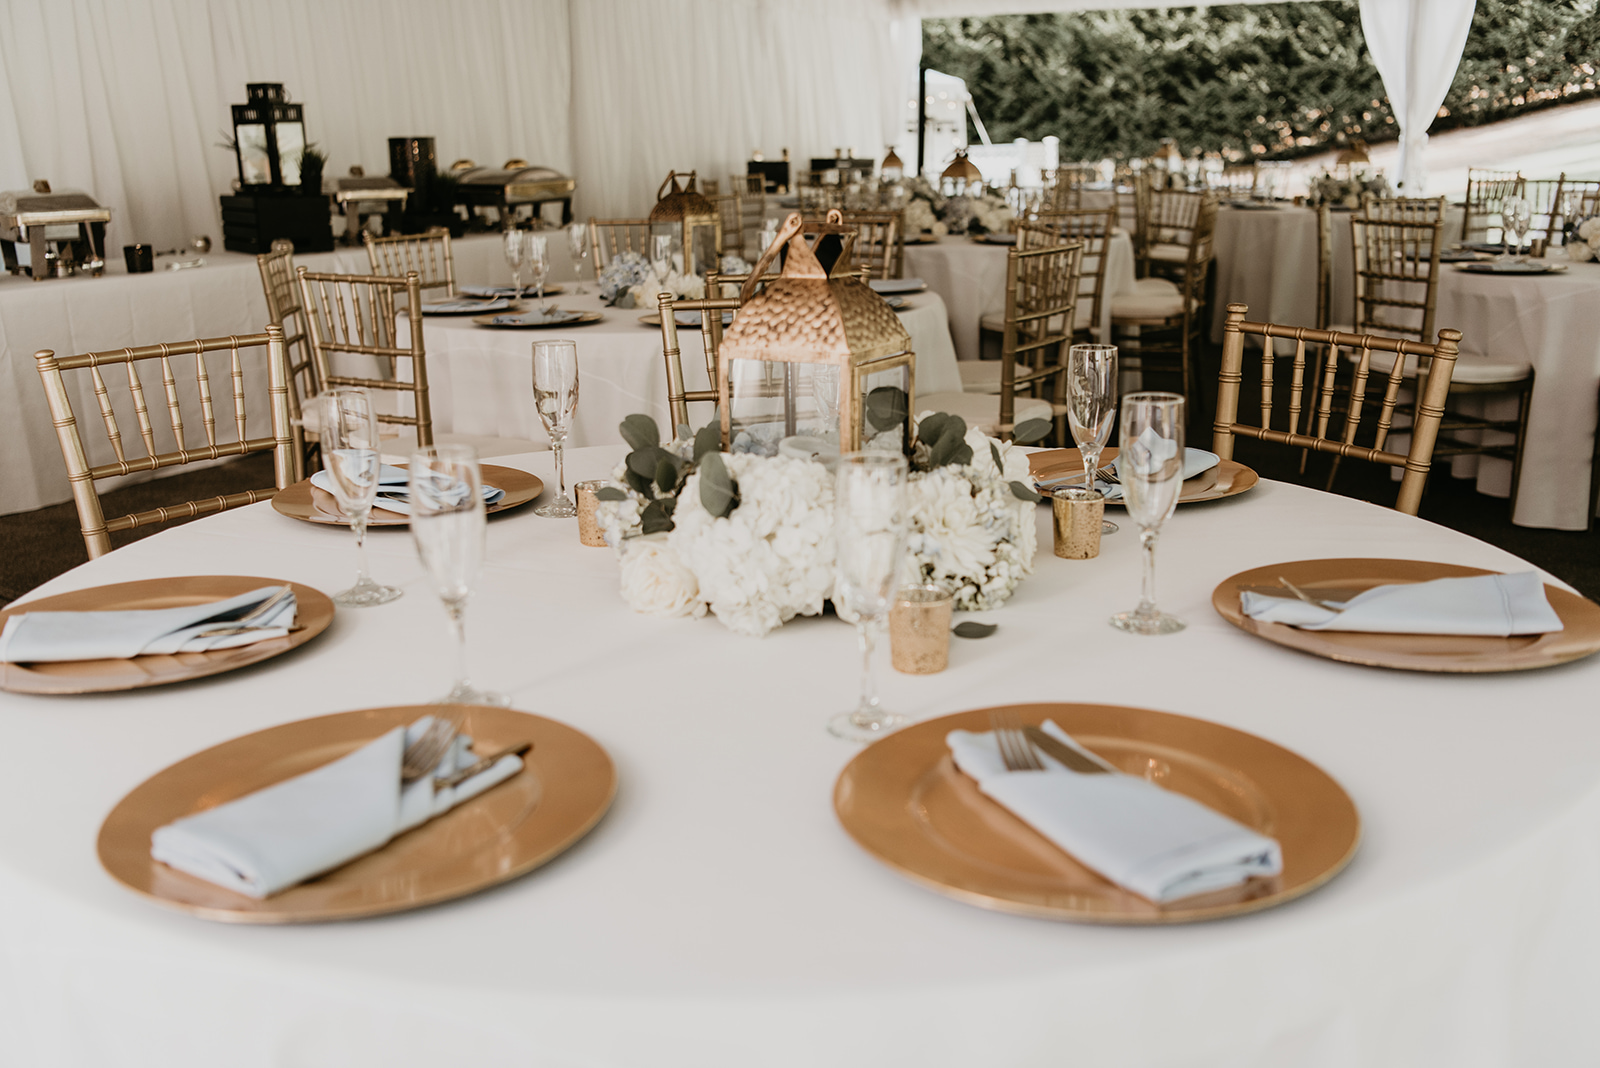 Thompson Wedding in Seattle, Washington - Decor